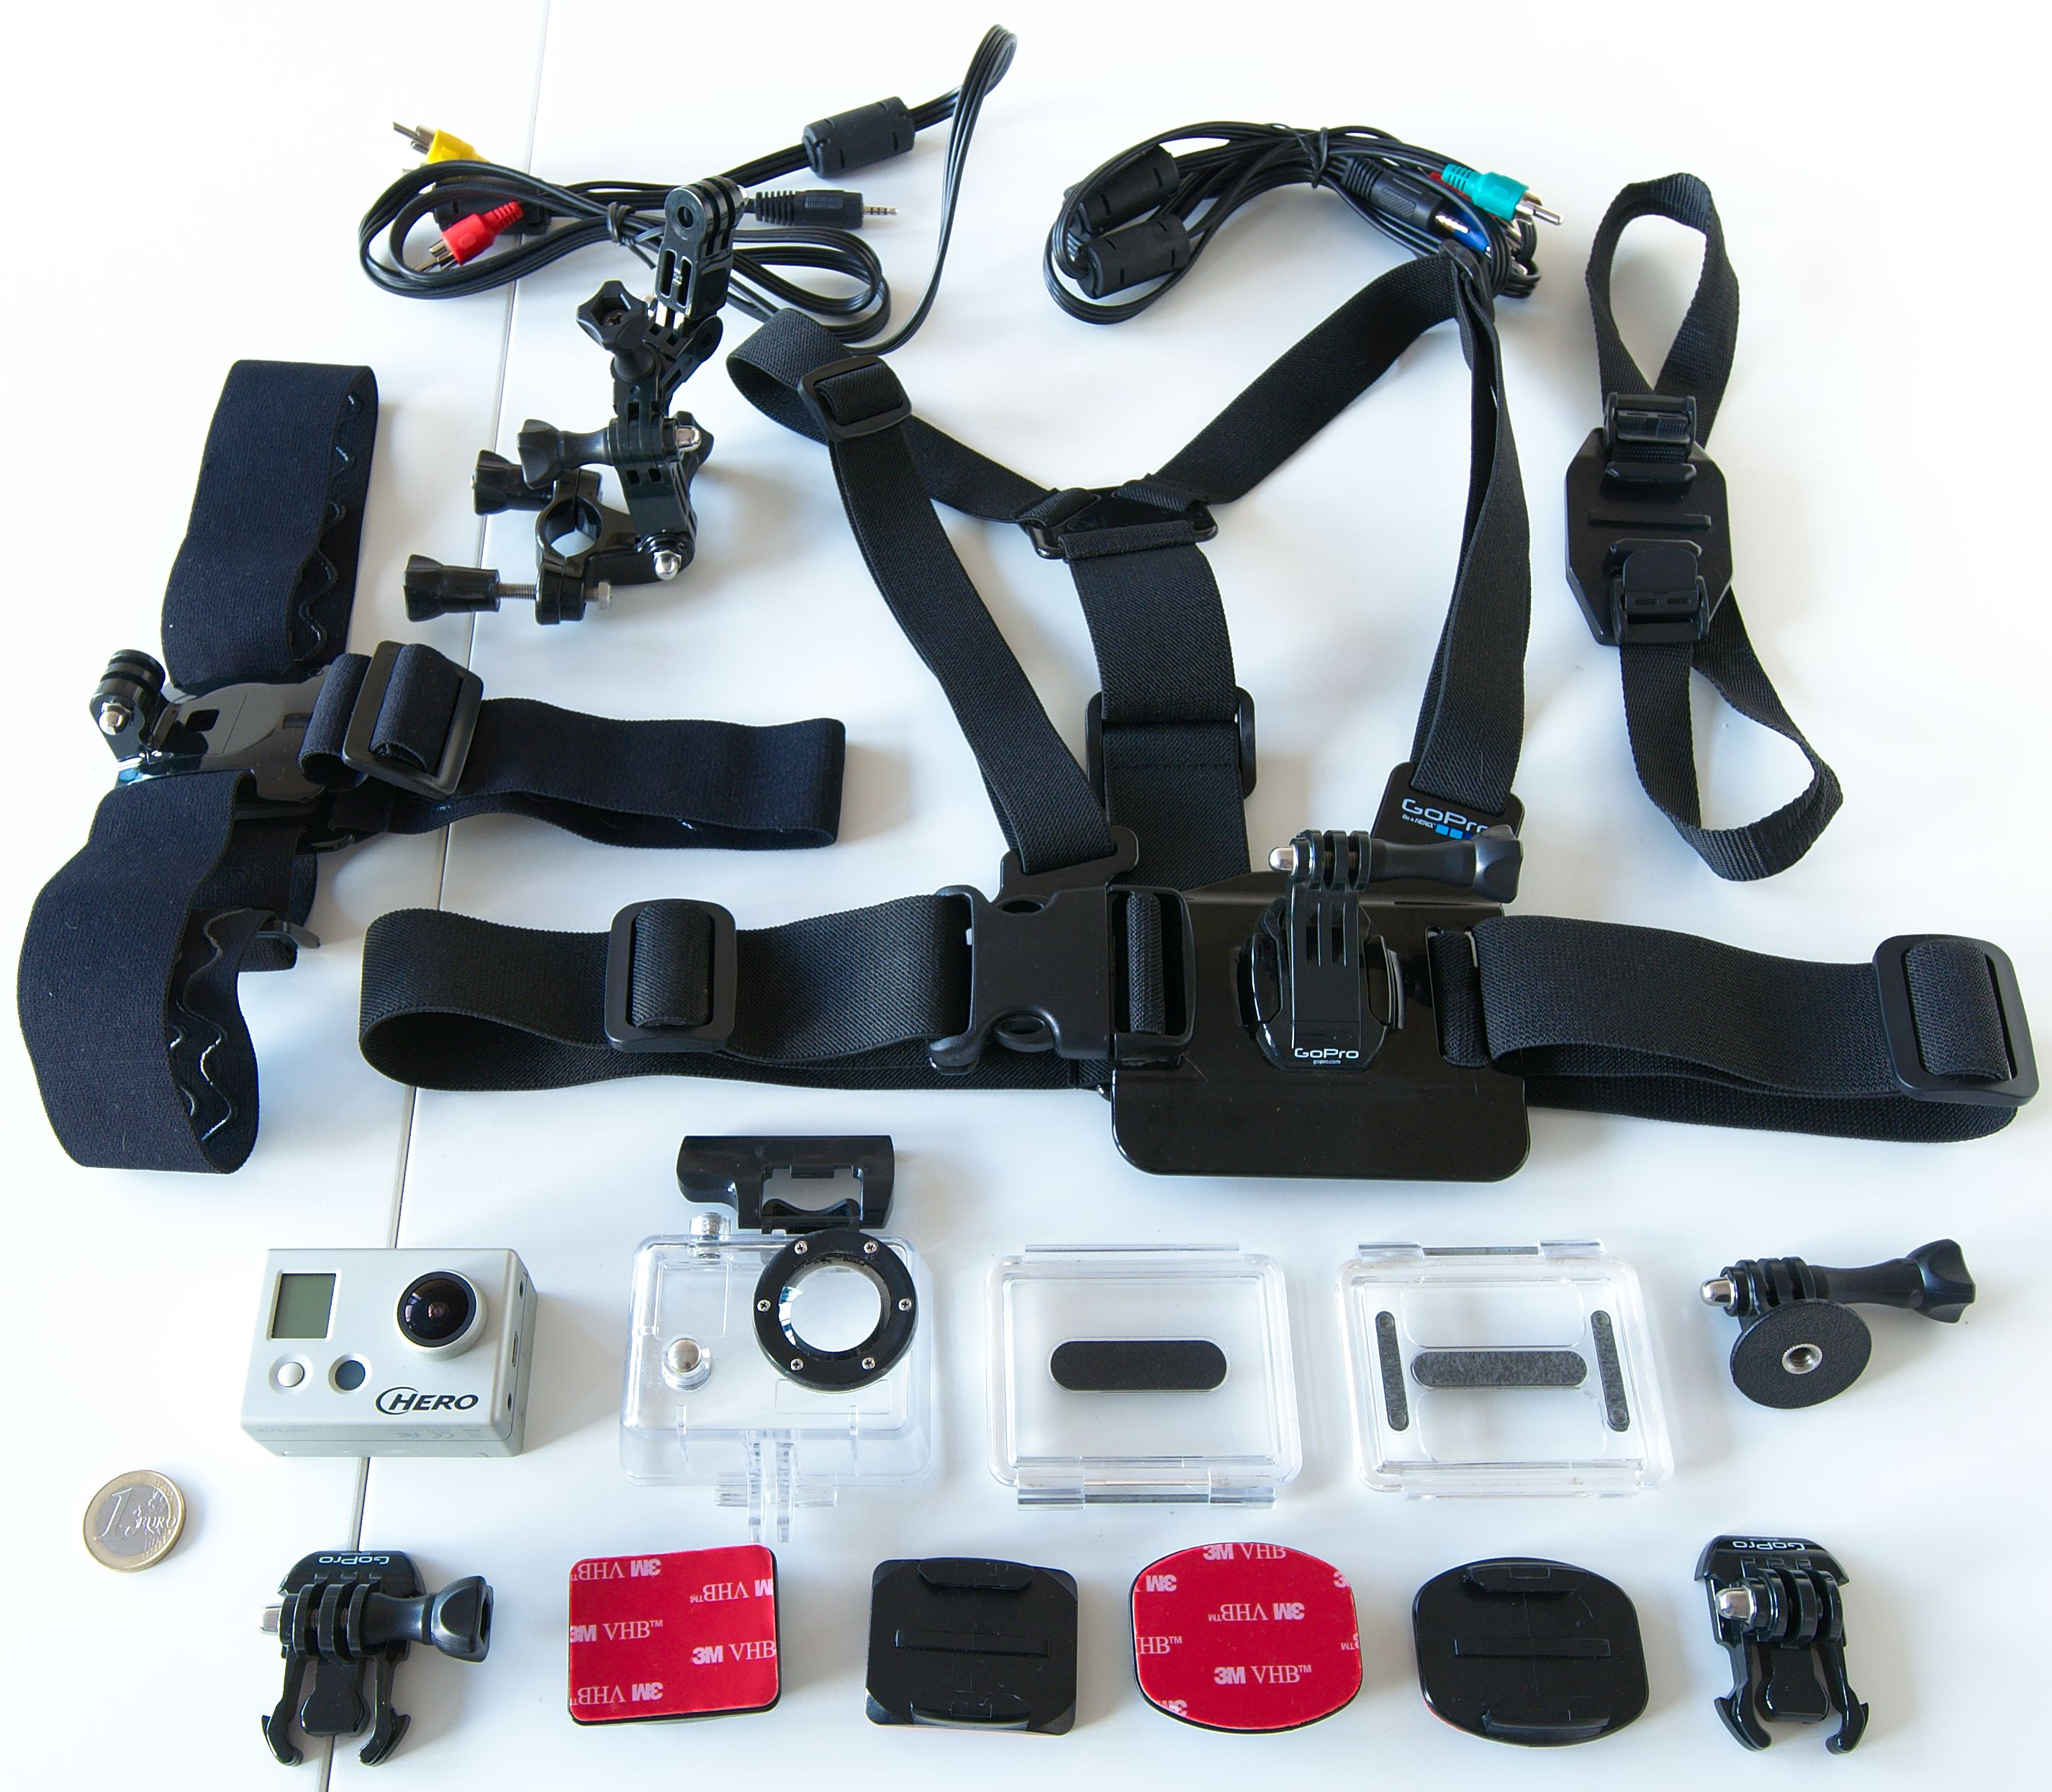 Gopro a c mera do esportista blog do maurivan for Things to get a country boy for christmas